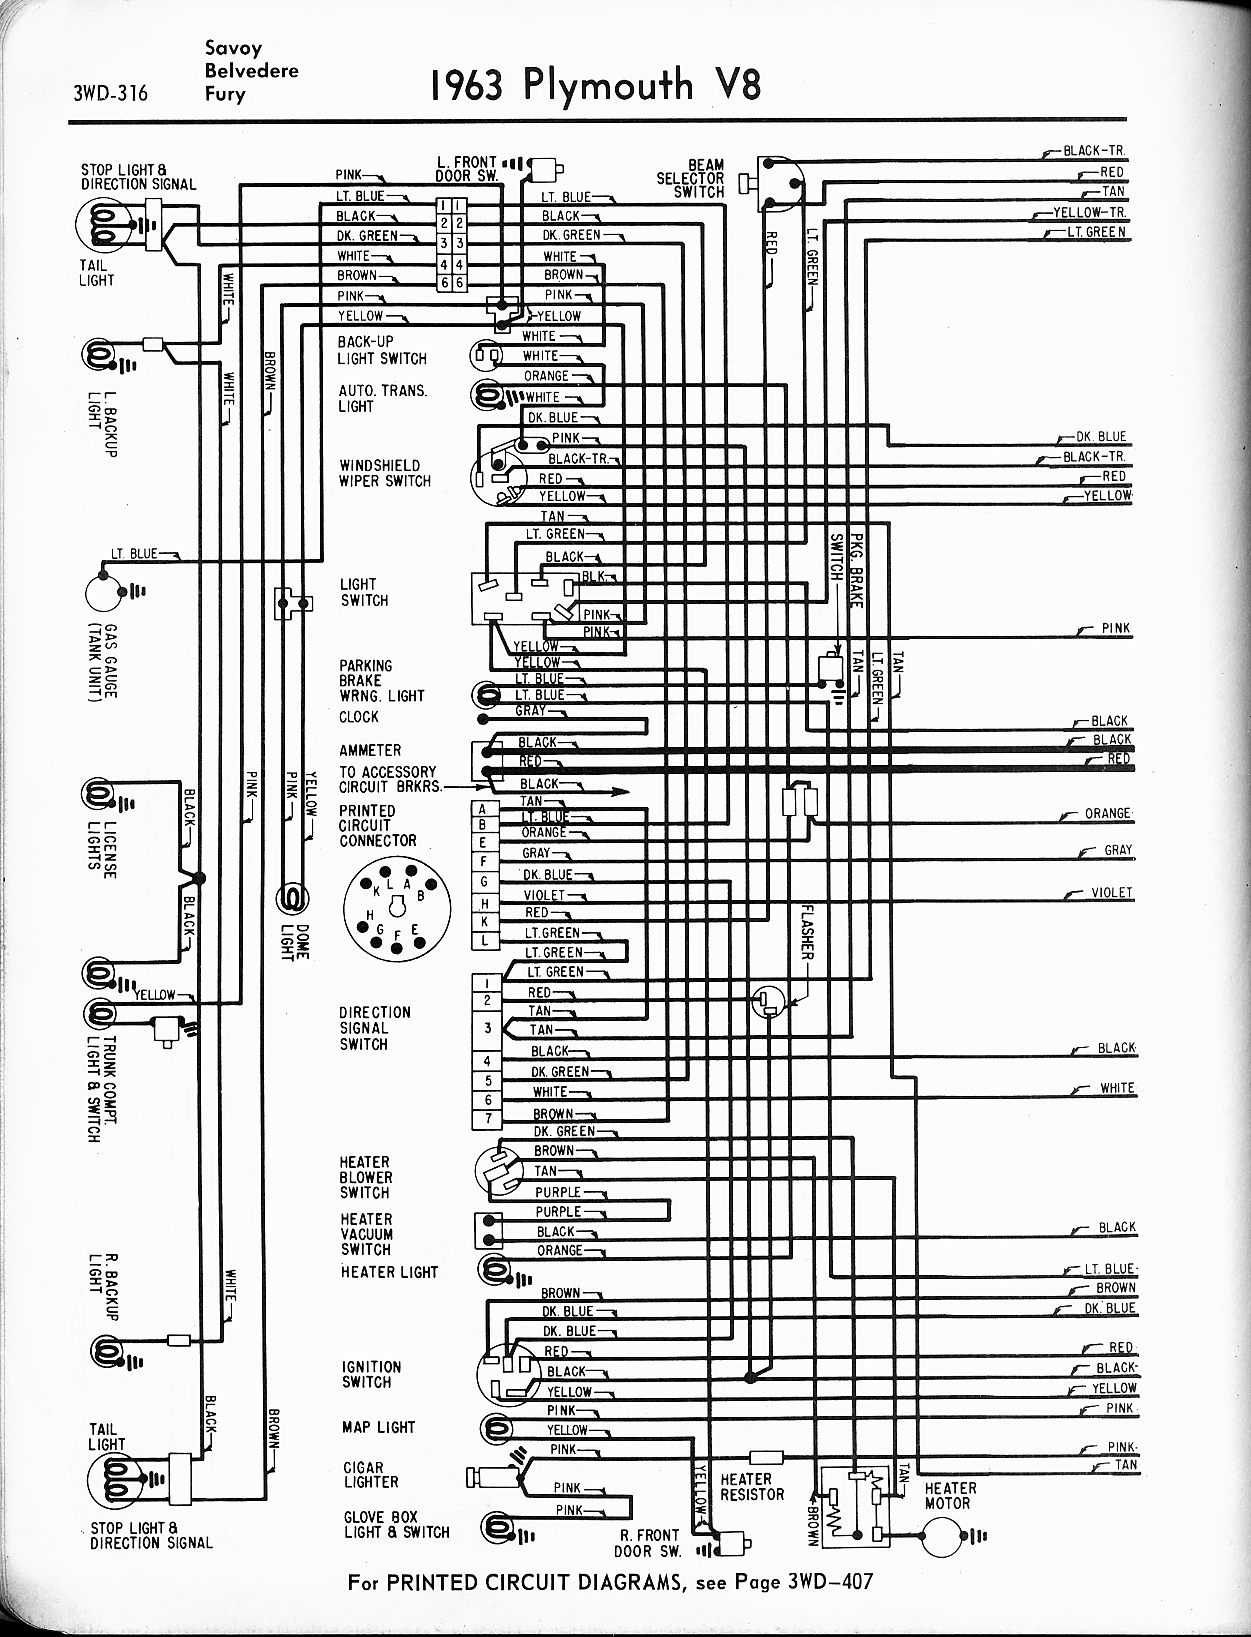 MWire5765 316 3800 series 2 wiring diagram gm ecu pinout \u2022 wiring diagrams j 1998 pontiac bonneville wiring diagram at bakdesigns.co